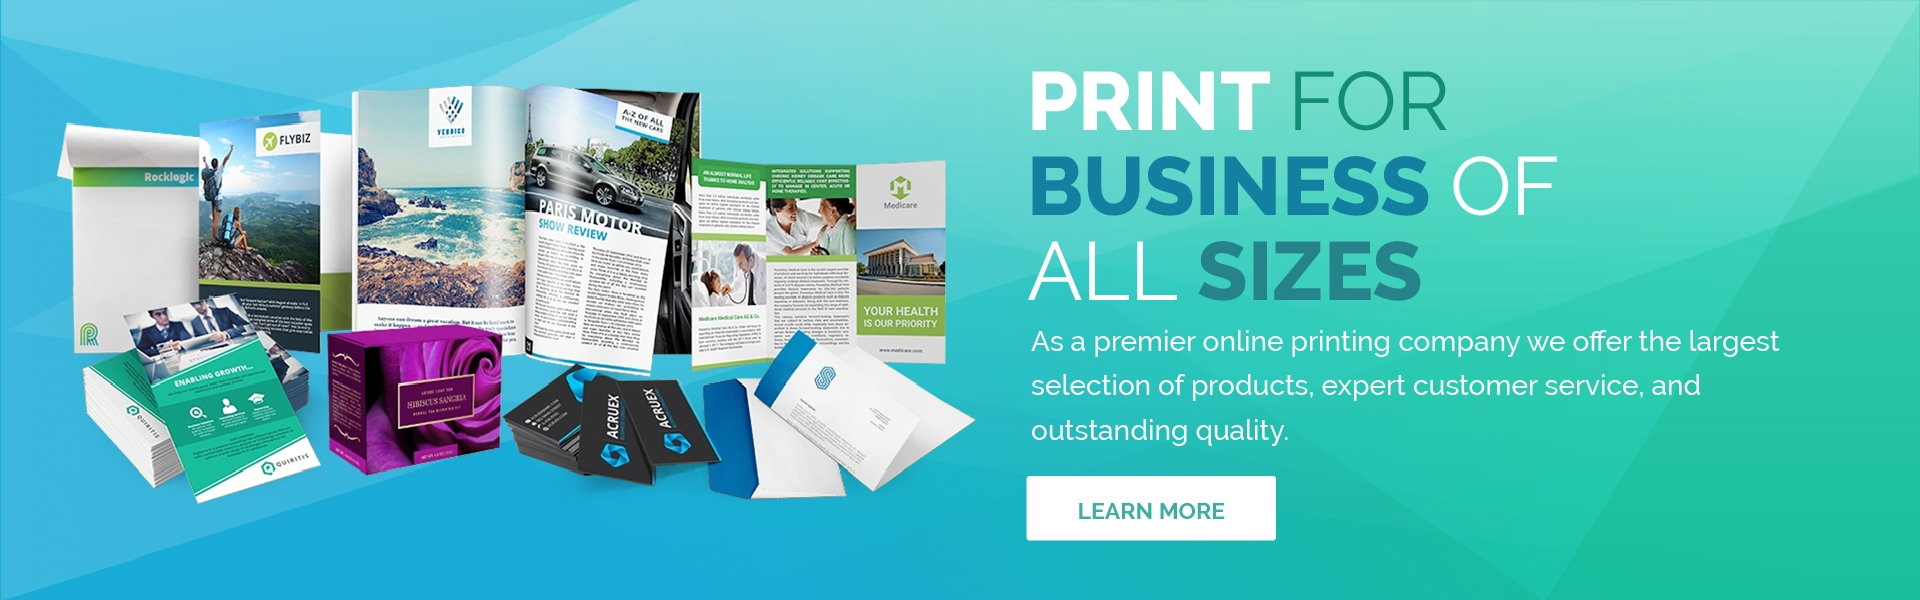 Print for business of all sizes